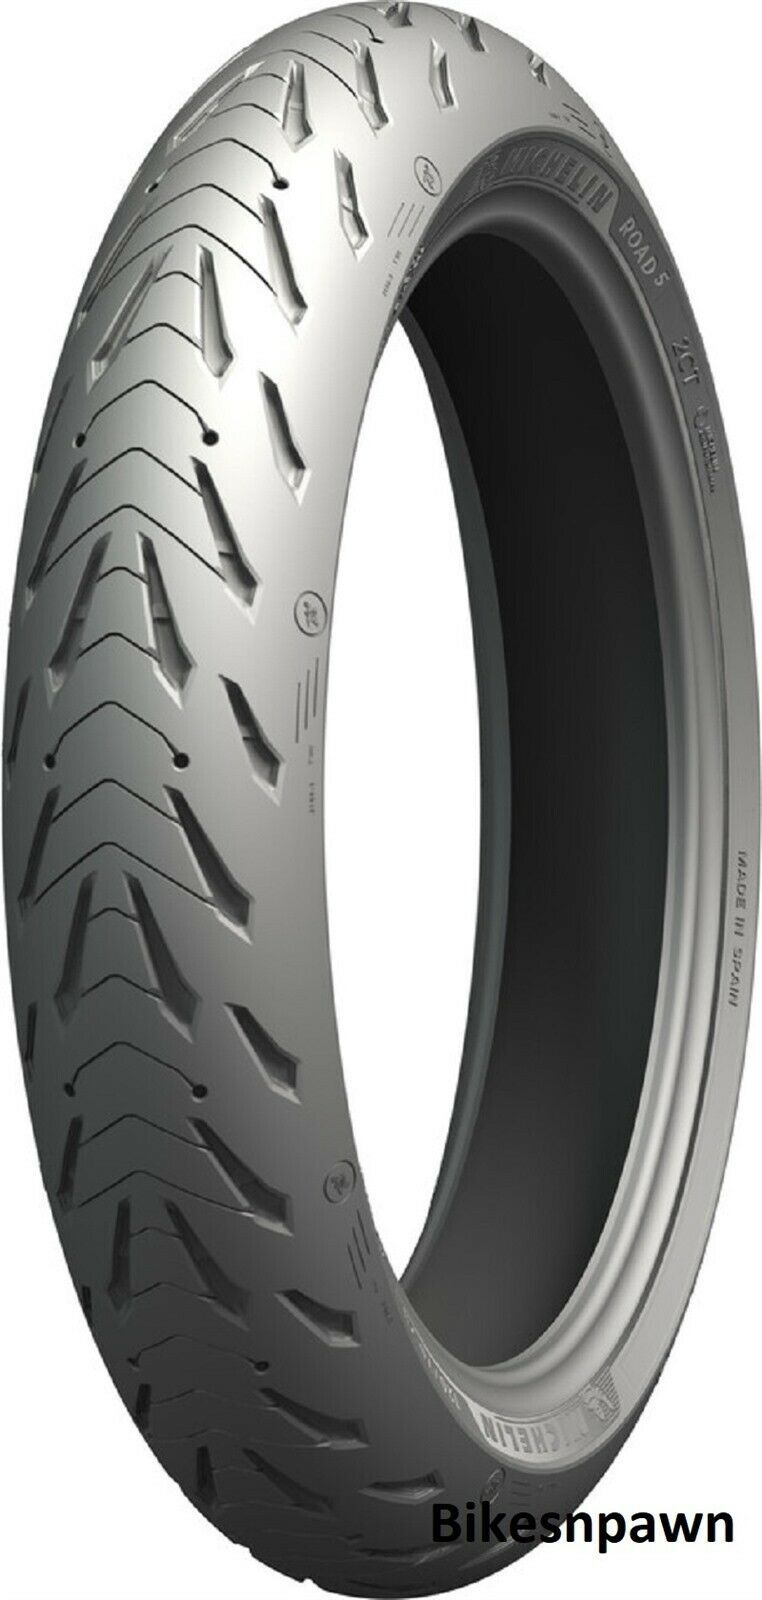 New Michelin Pilot Road 5 GT 120/70ZR17 Front Radial Motorcycle Tire 58W 81056